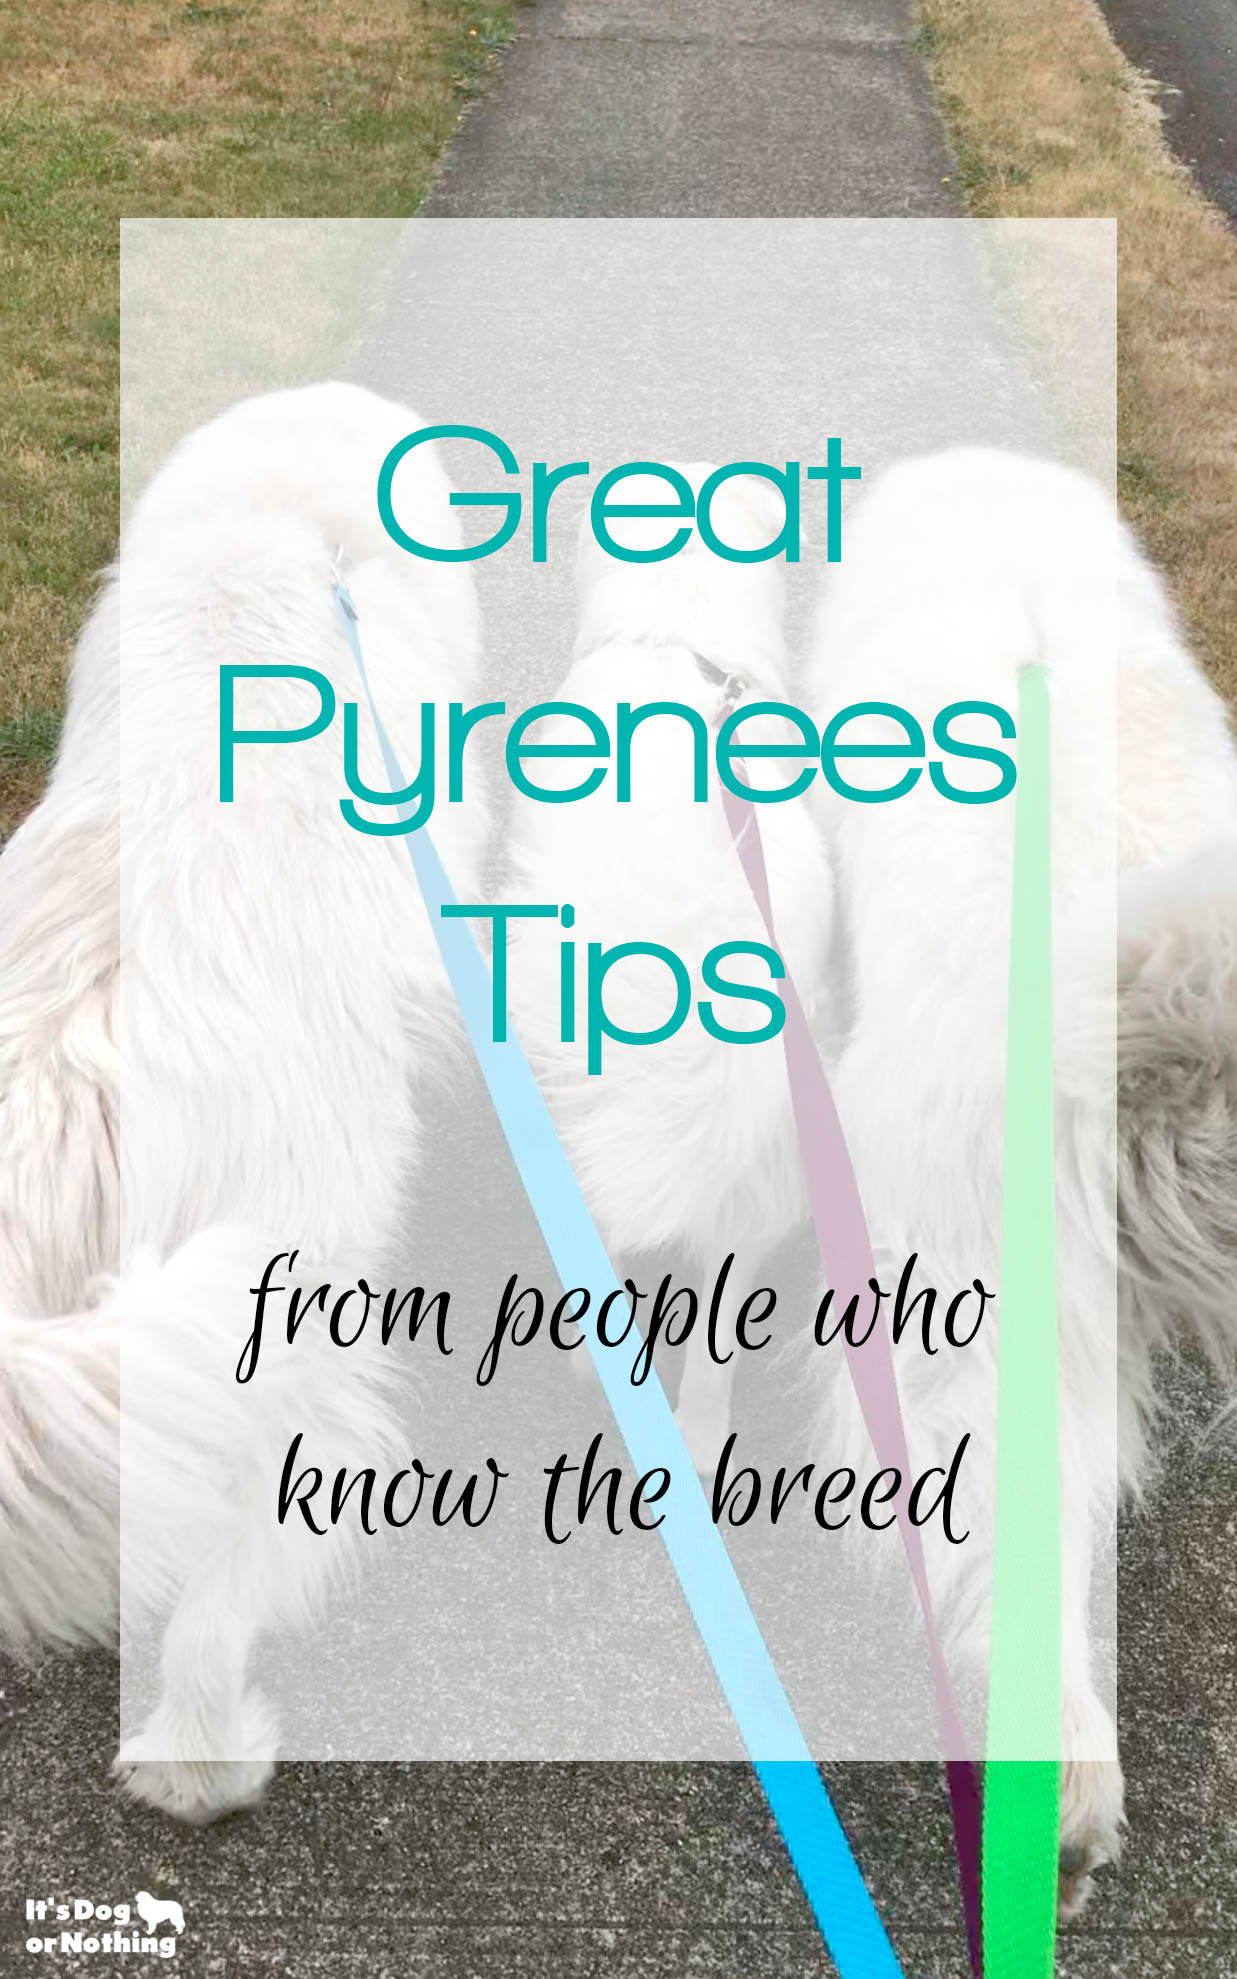 There can be a lot of misinformation about the Great Pyrenees breed out there. We polled thousands of pyr lovers to get their top Great Pyrenees tips.